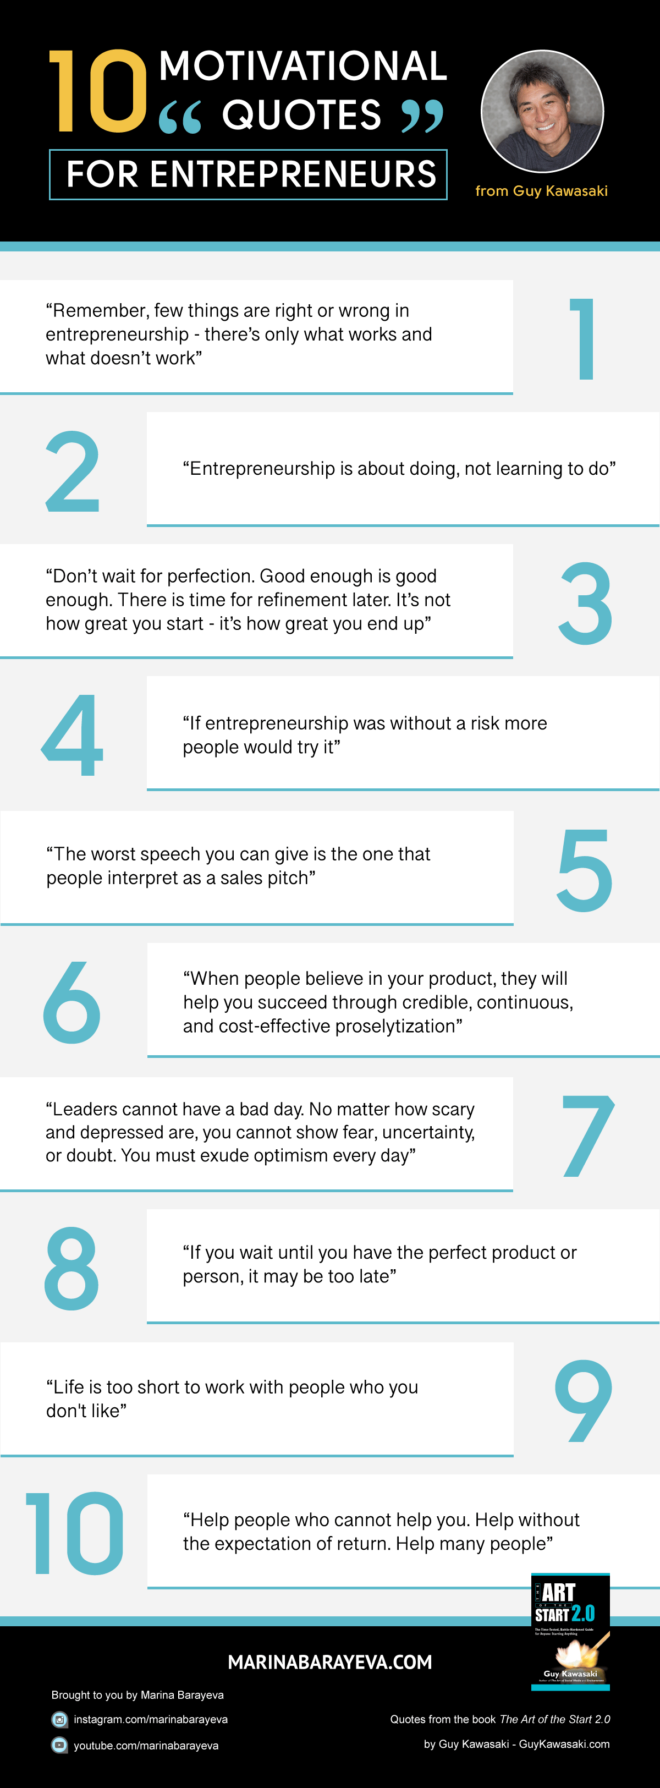 If you are an entrepreneur, often you need a little more inspiration for succeeding. Here are 10 motivational quotes for entrepreneurs from Guy Kawasaki. #quotes #quotesoftheday #inspiration #motivation #inspiration #motivation #motivationalquotes #motivational #inspirational #Inspirationalquotes #businessquotes #business #smallbusiness #smallbiz #entrepreneur #entrepreneurship #businesstips #marketing #creativeentrepreneur #creativebusiness